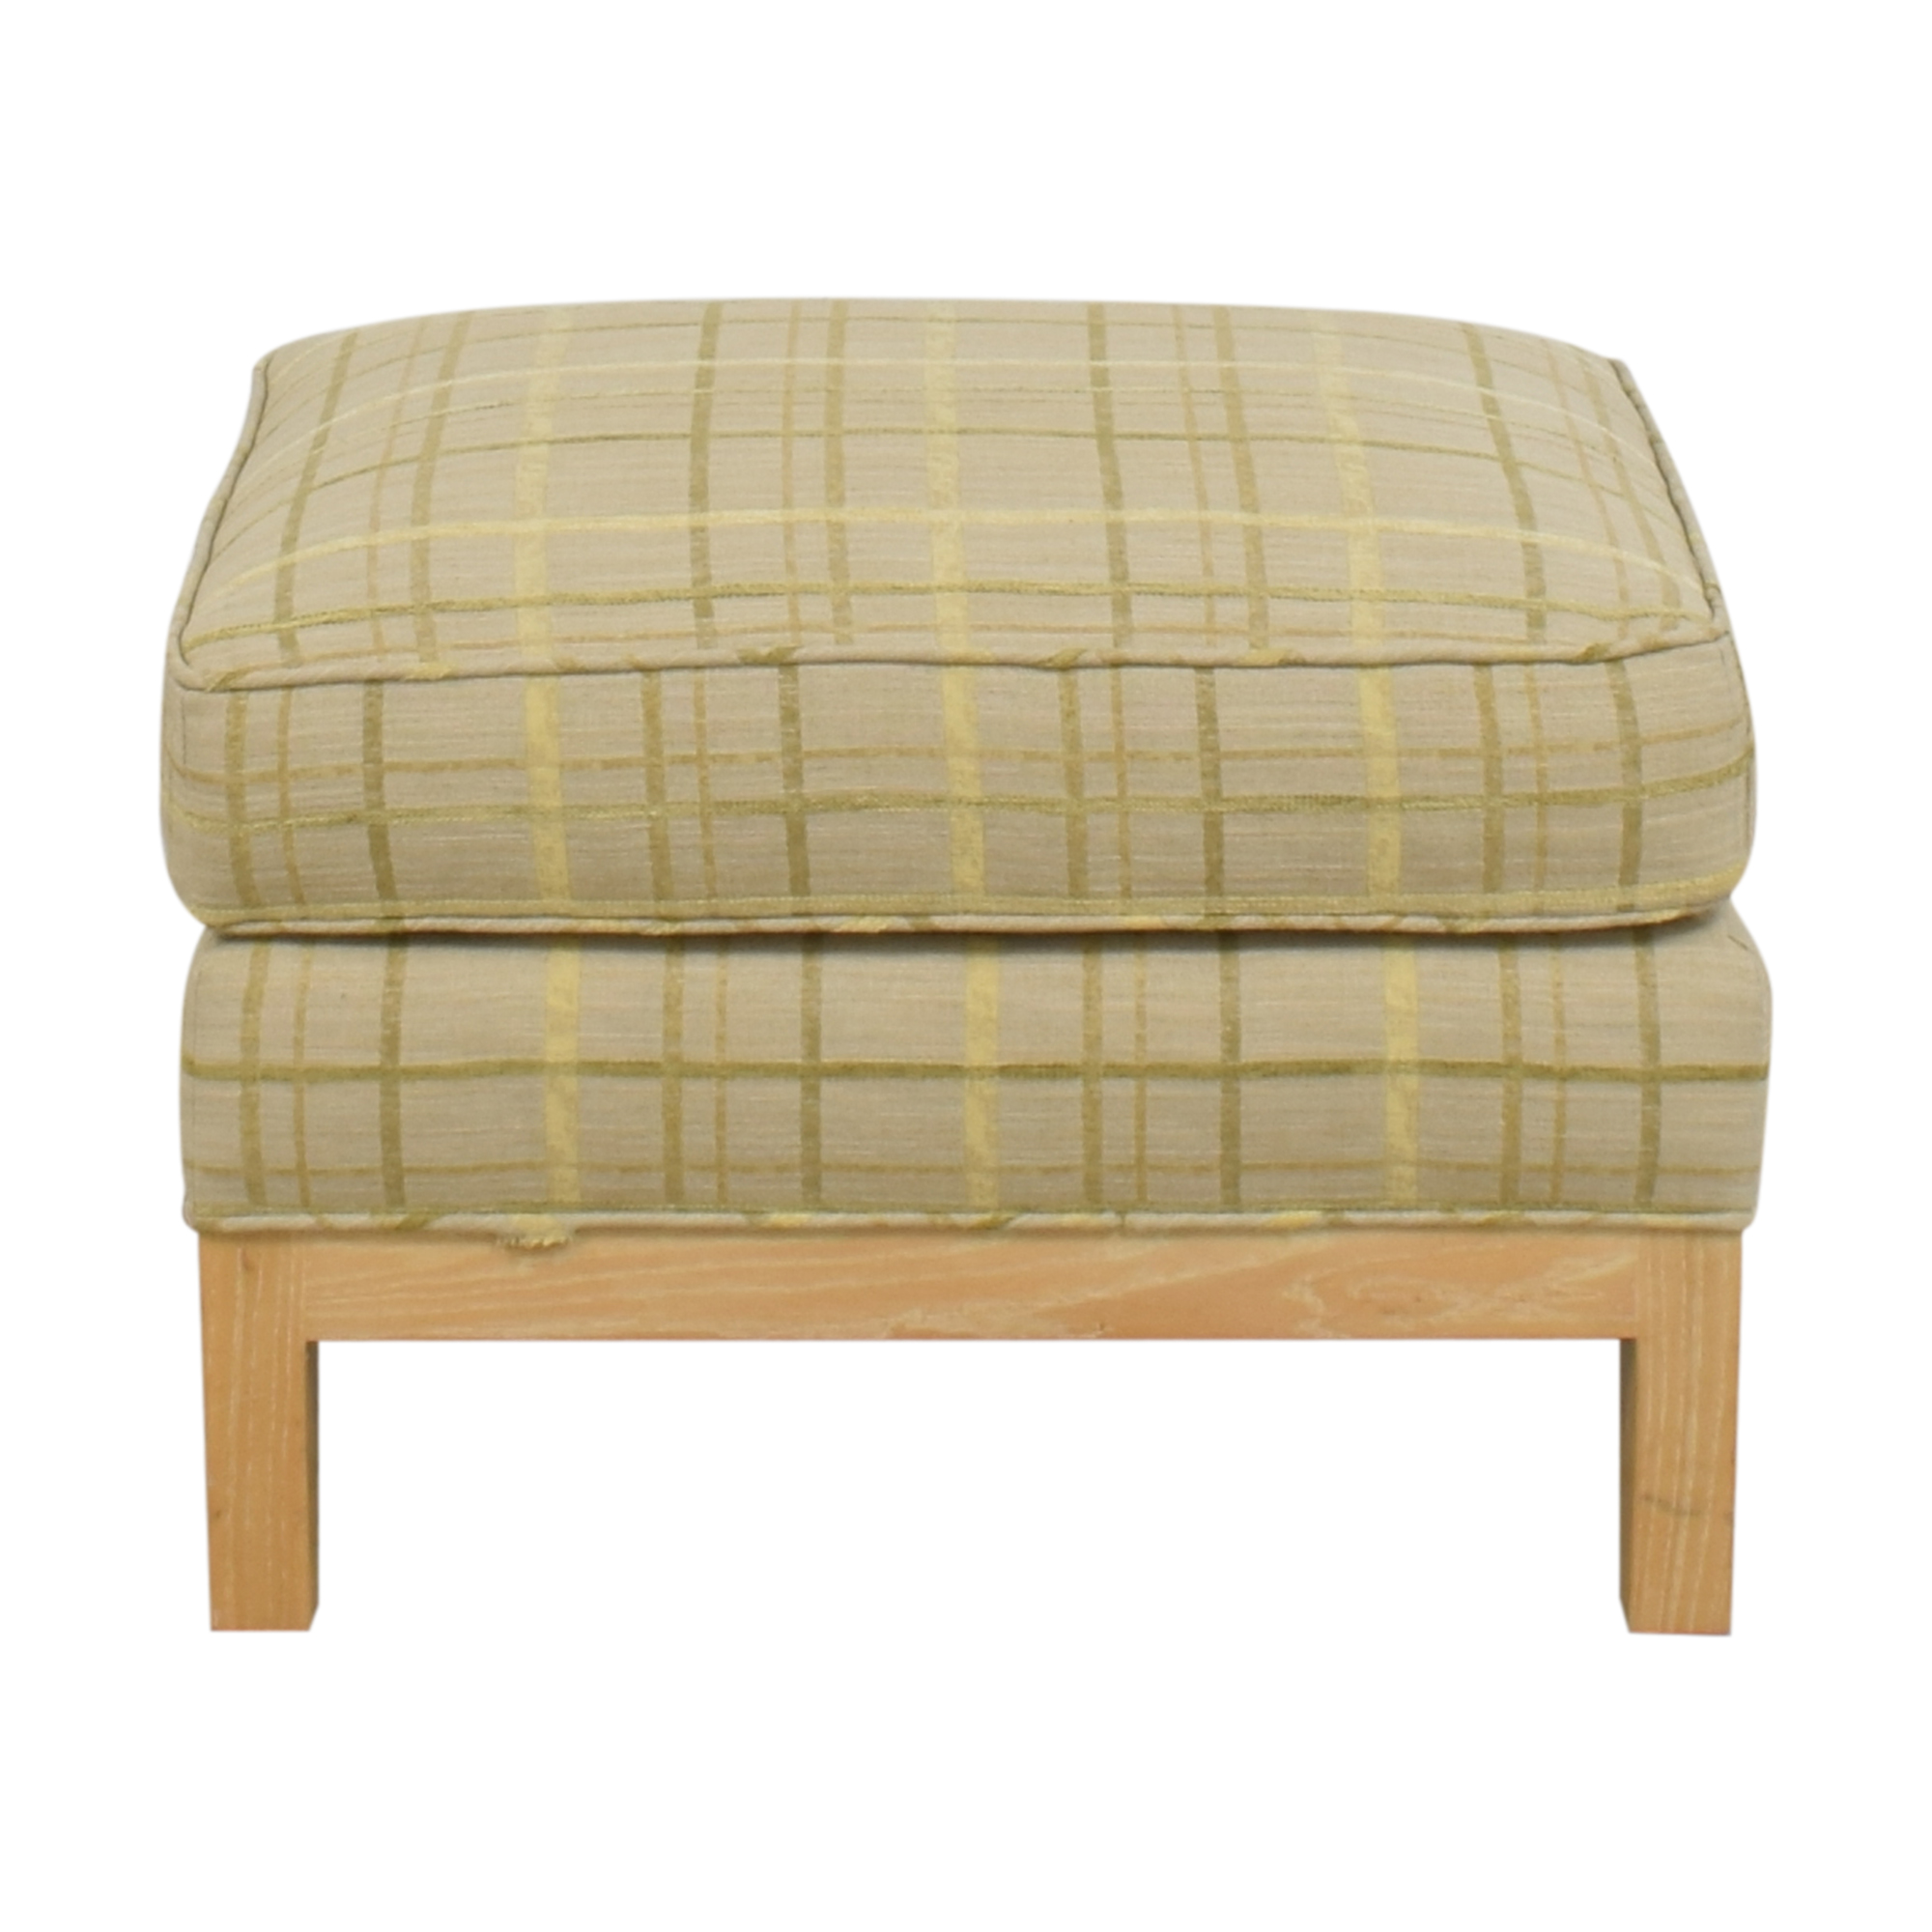 Custom Rectangular Ottoman dimensions